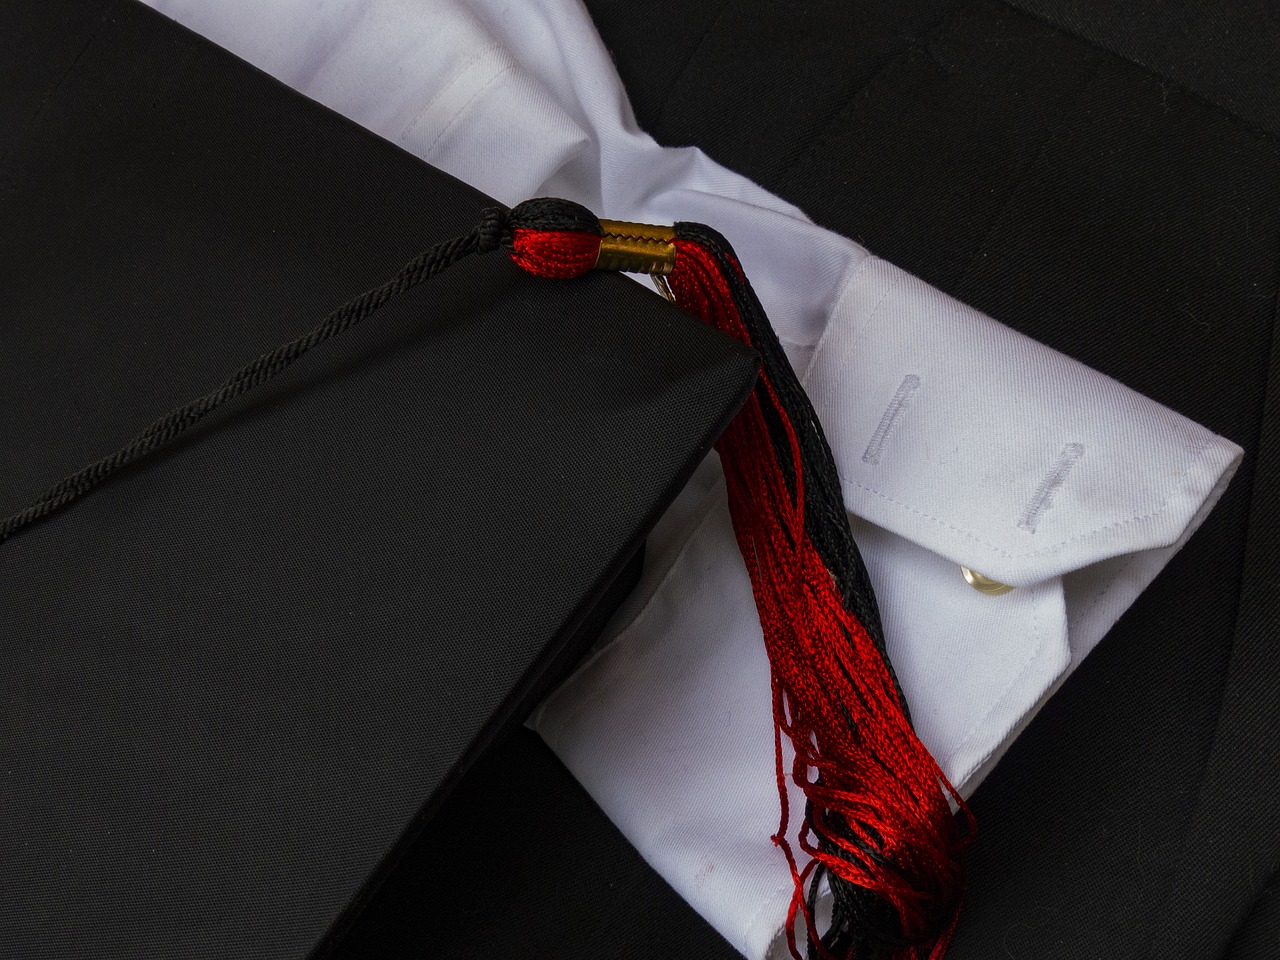 A close-up shot of a graduation cap with a red-and-black tassel on top of a black graduation robe and the sleeve of a white button-down